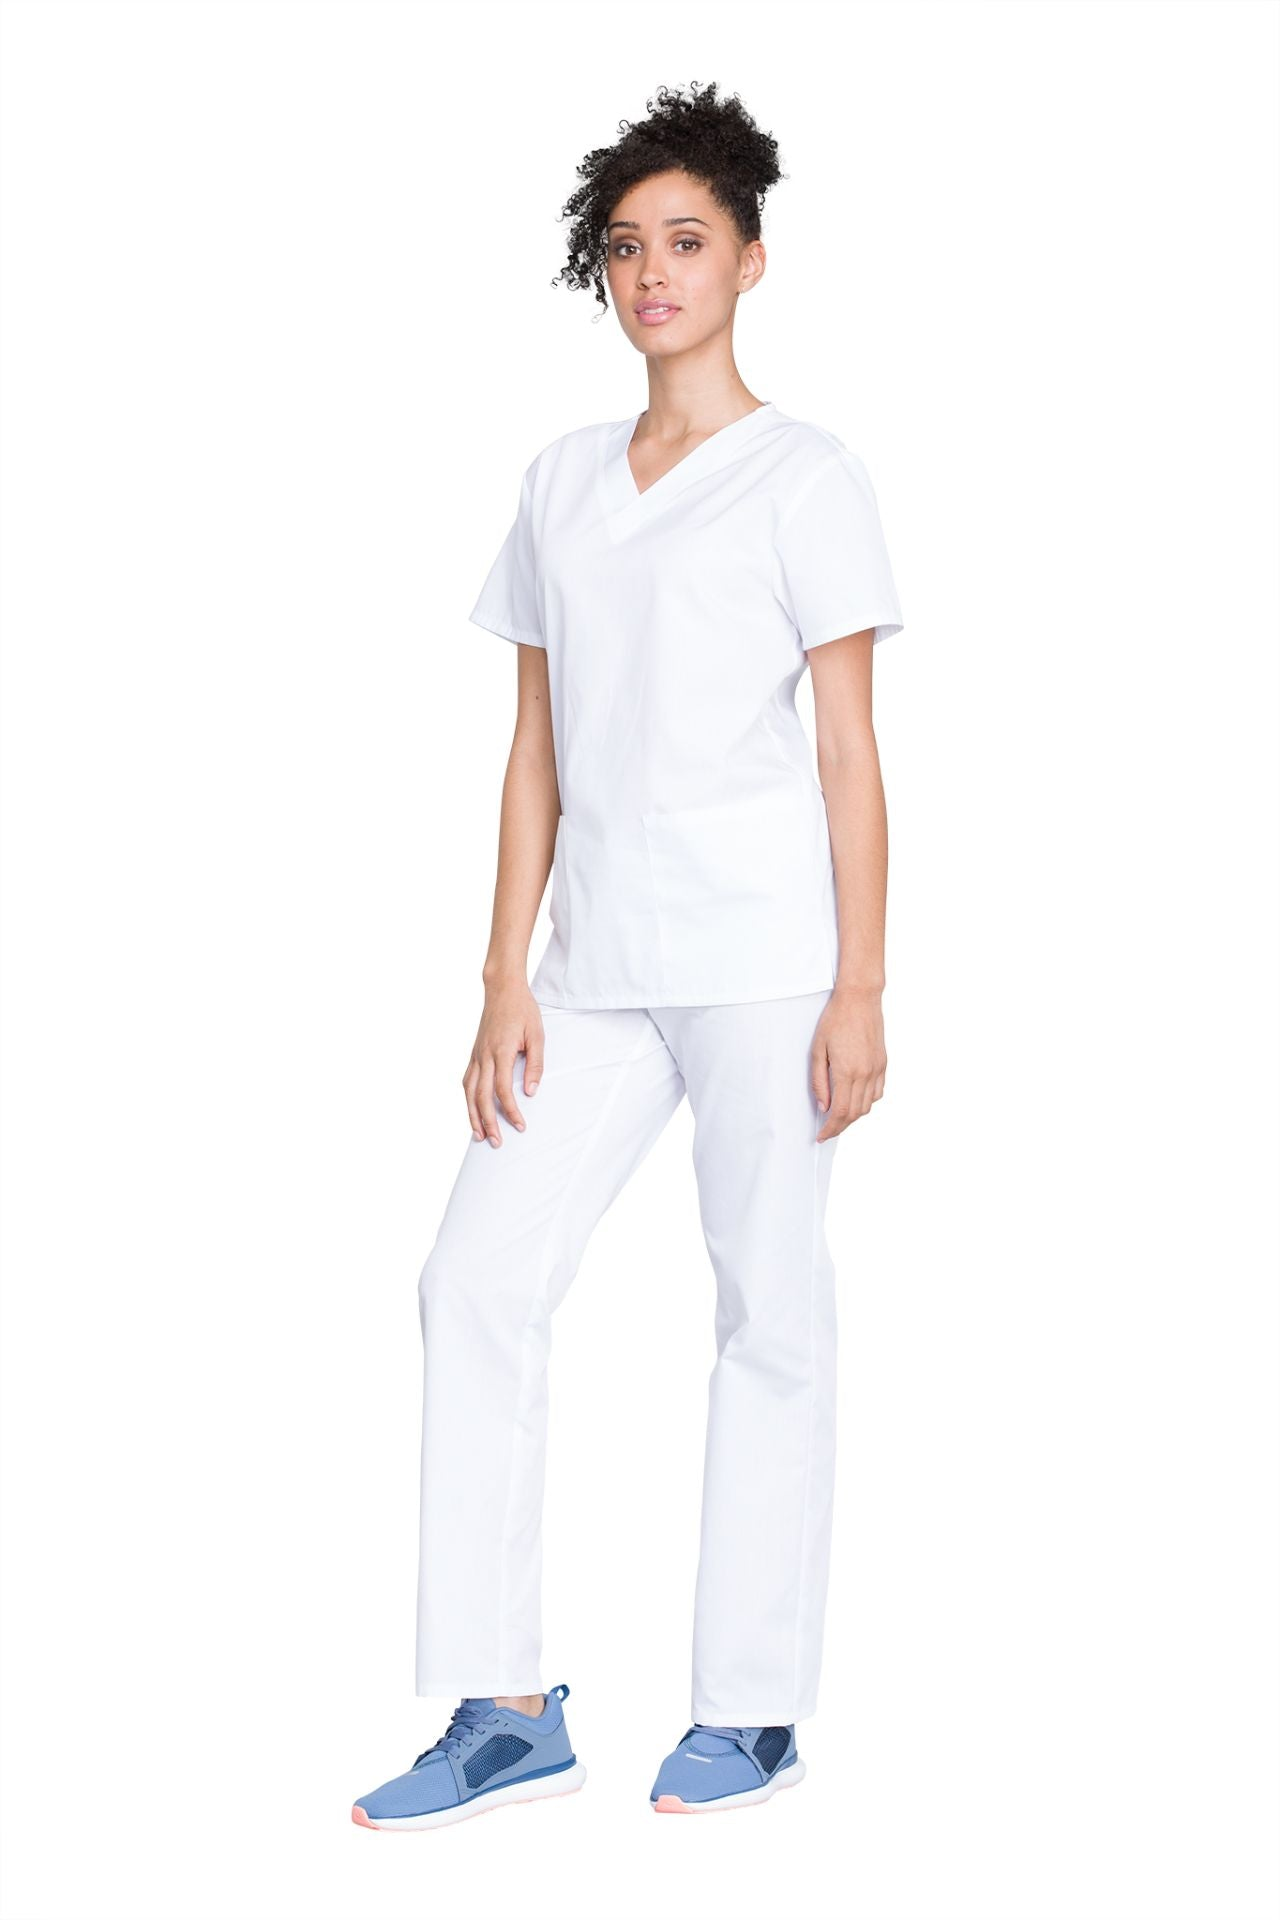 White - Cherokee Workwear Originals Unisex Top and Pant Set